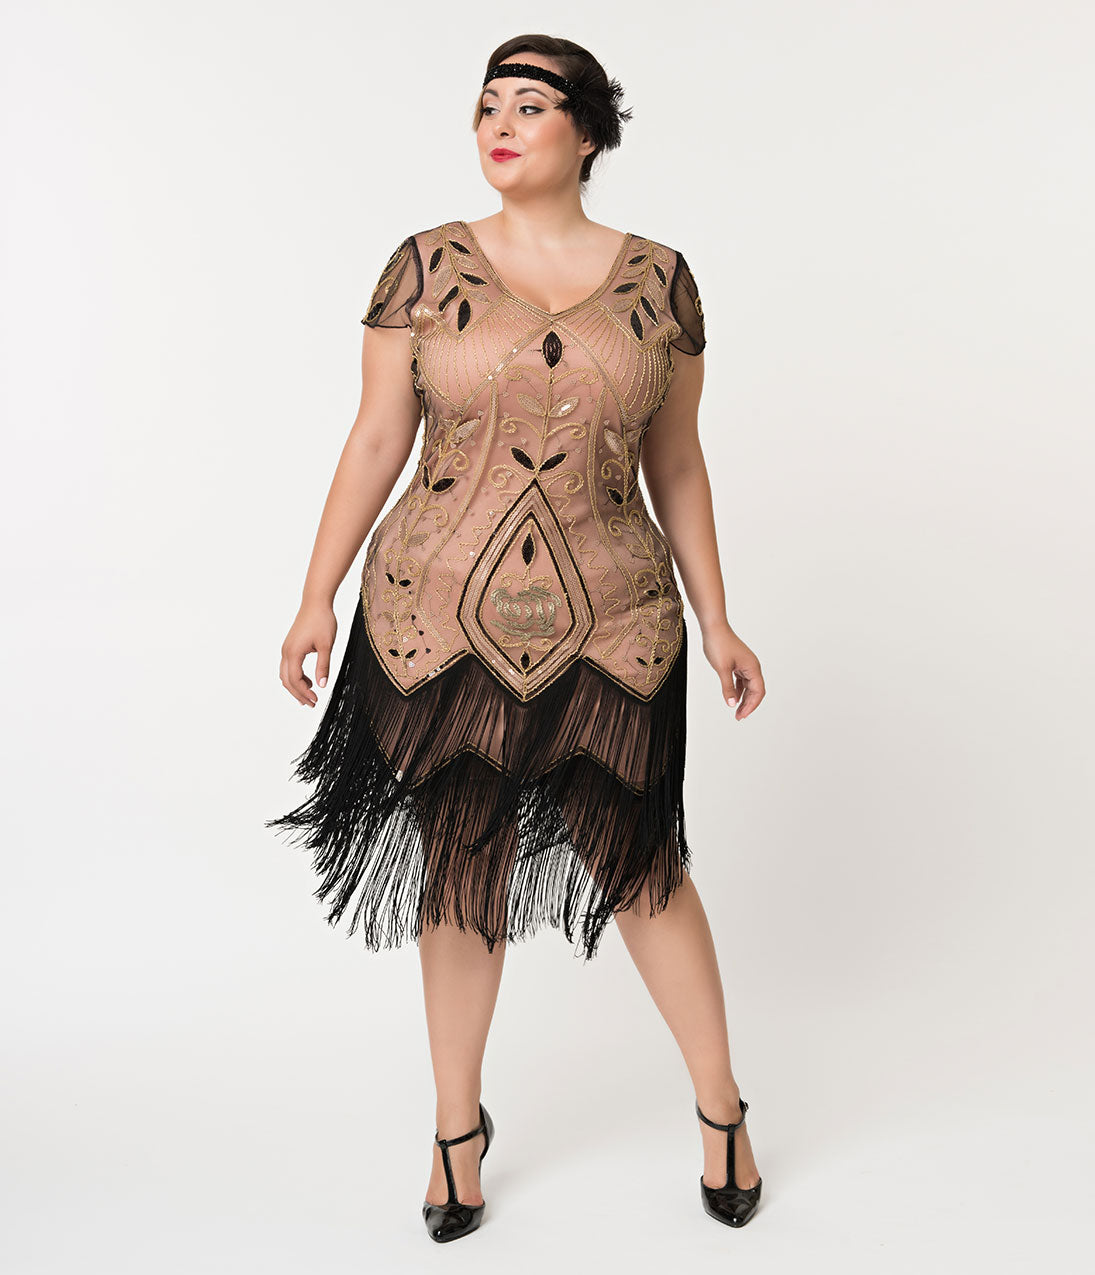 Downton Abbey Inspired Dresses Unique Vintage Plus Size 1920S Gold Rose  Pink Noele Fringe Flapper Dress $48.00 AT vintagedancer.com